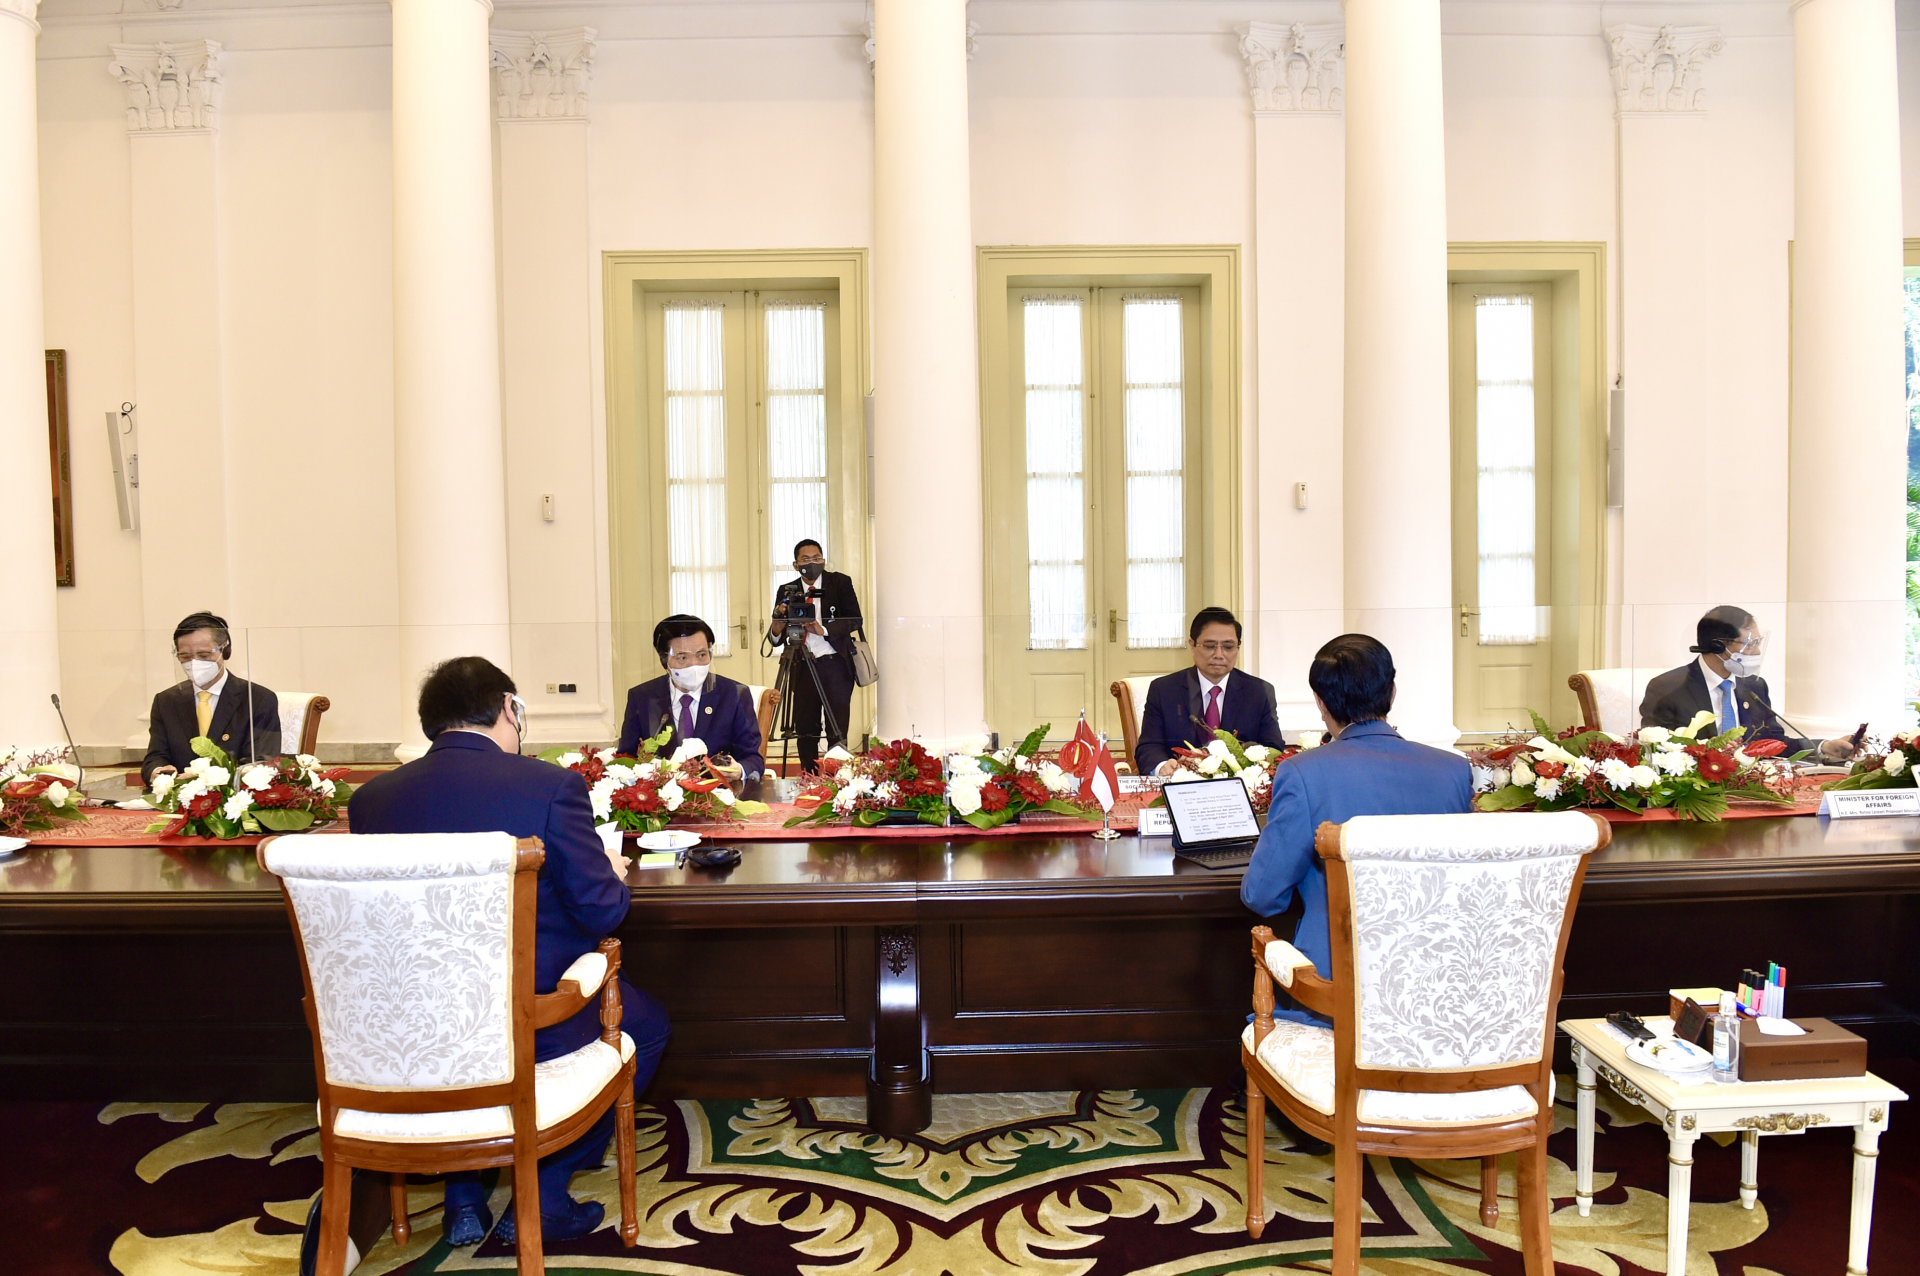 Vietnamese Prime Minister Holds Talks With Indonesian President Ahead of Regional Leaders' Meeting